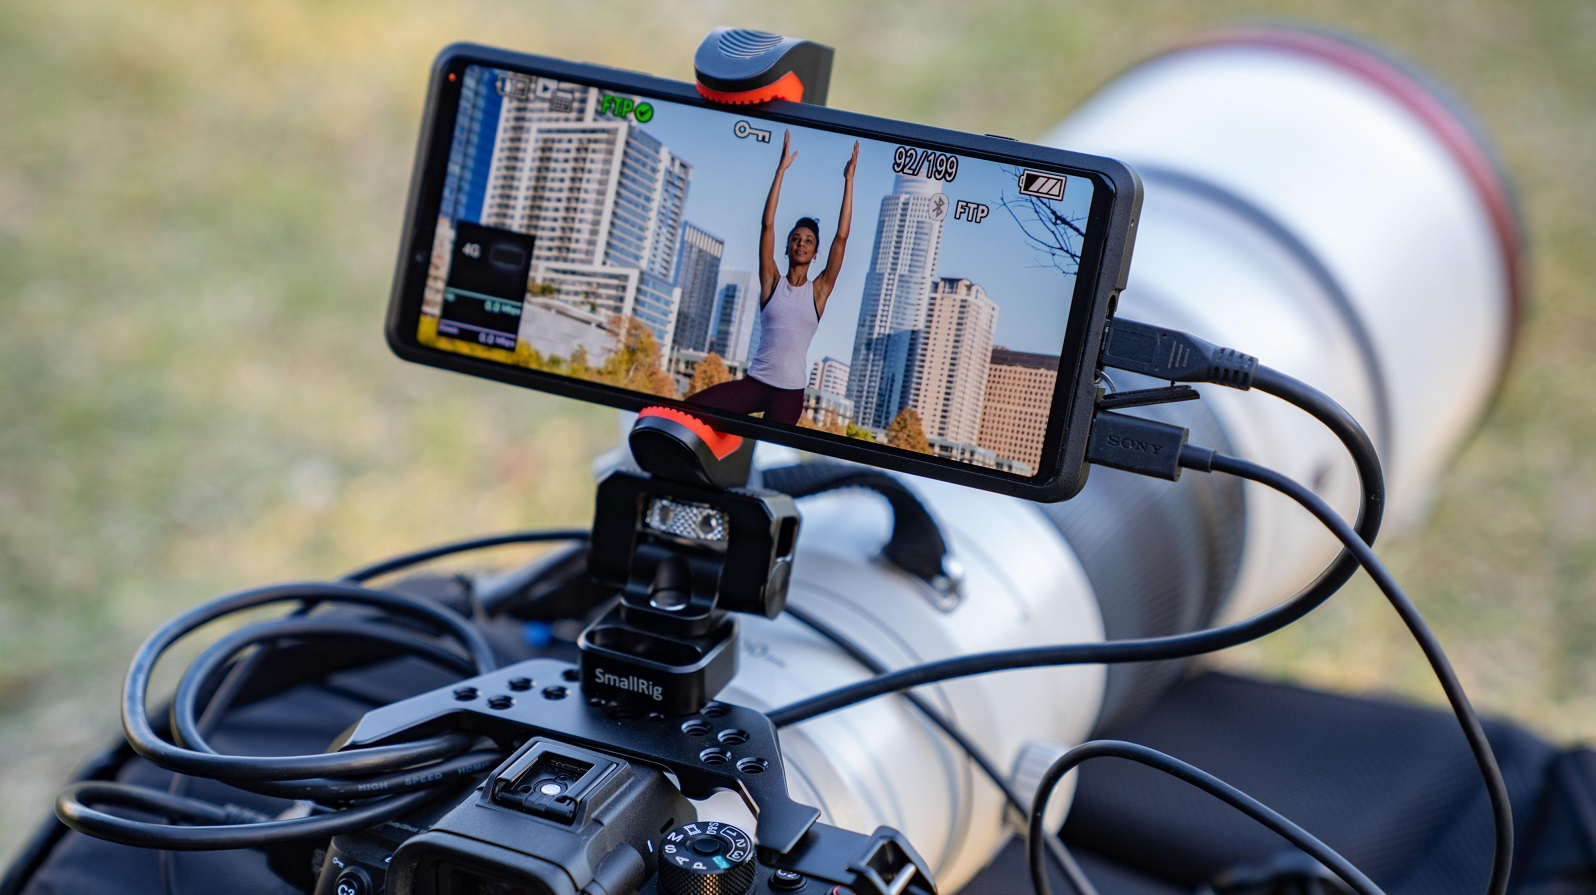 A Sony Xperia Pro mounted on top of a camera